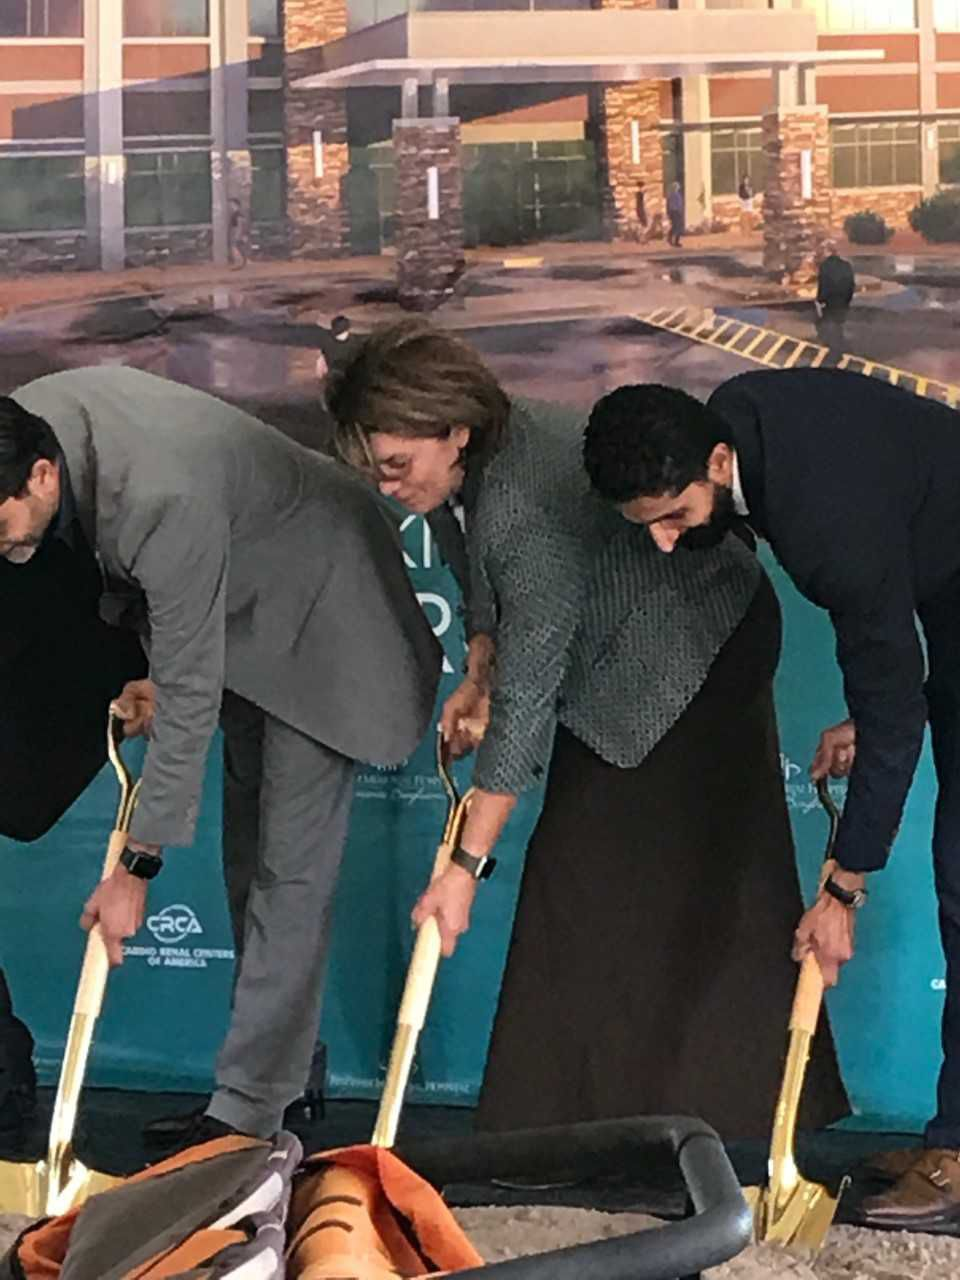 BMH and Cardio Renal Centers of America broke ground on a new medical facility in Idaho Falls